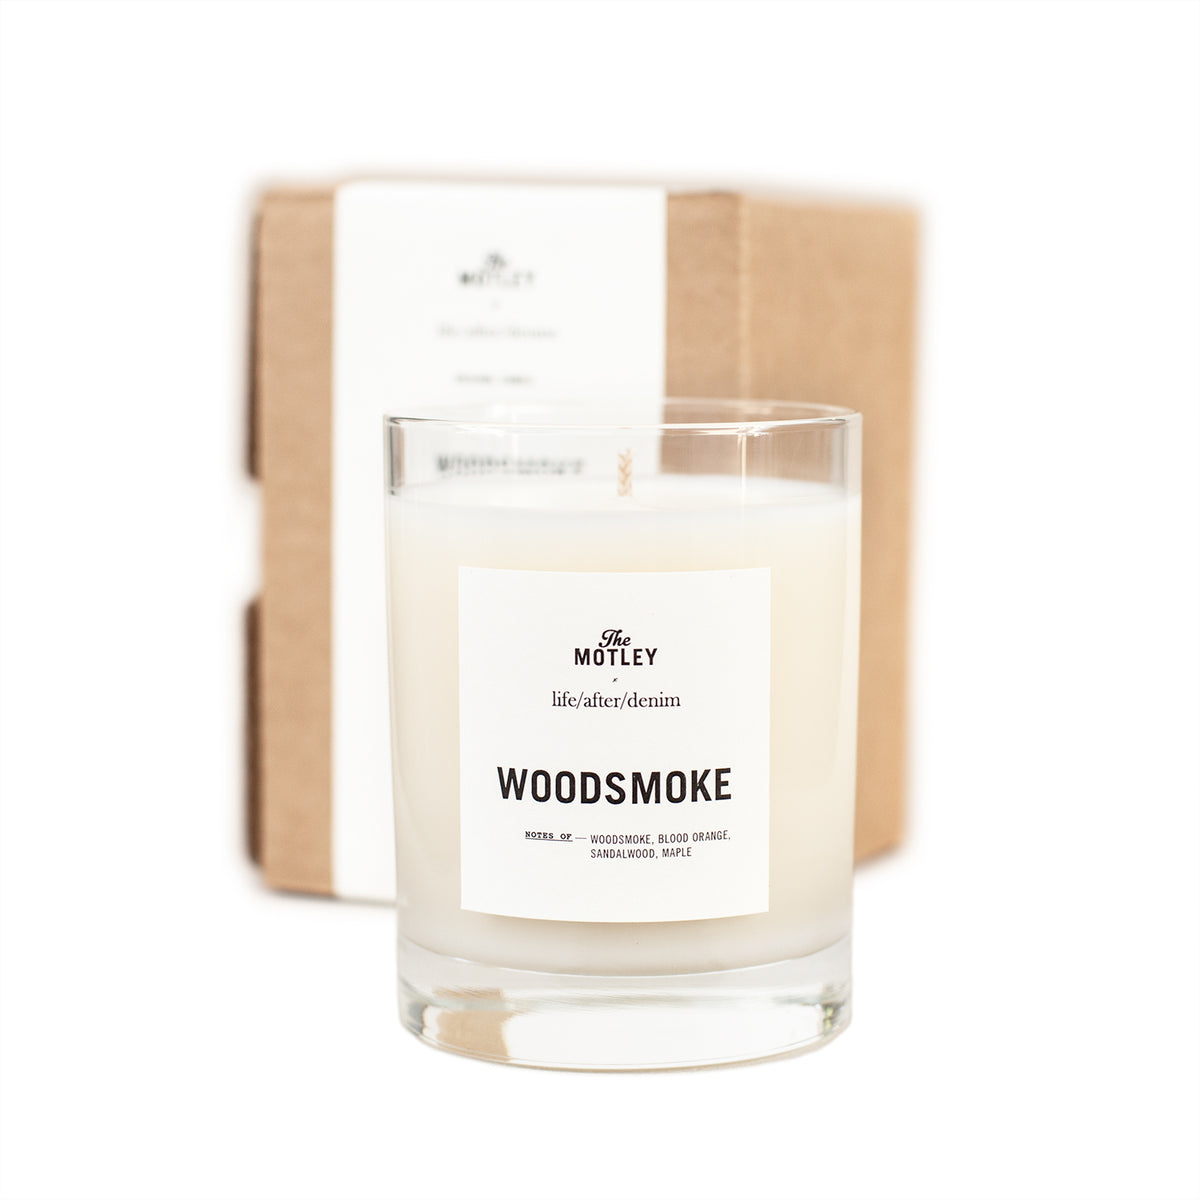 The Motley + life/after/denim 'Woodsmoke' Candle